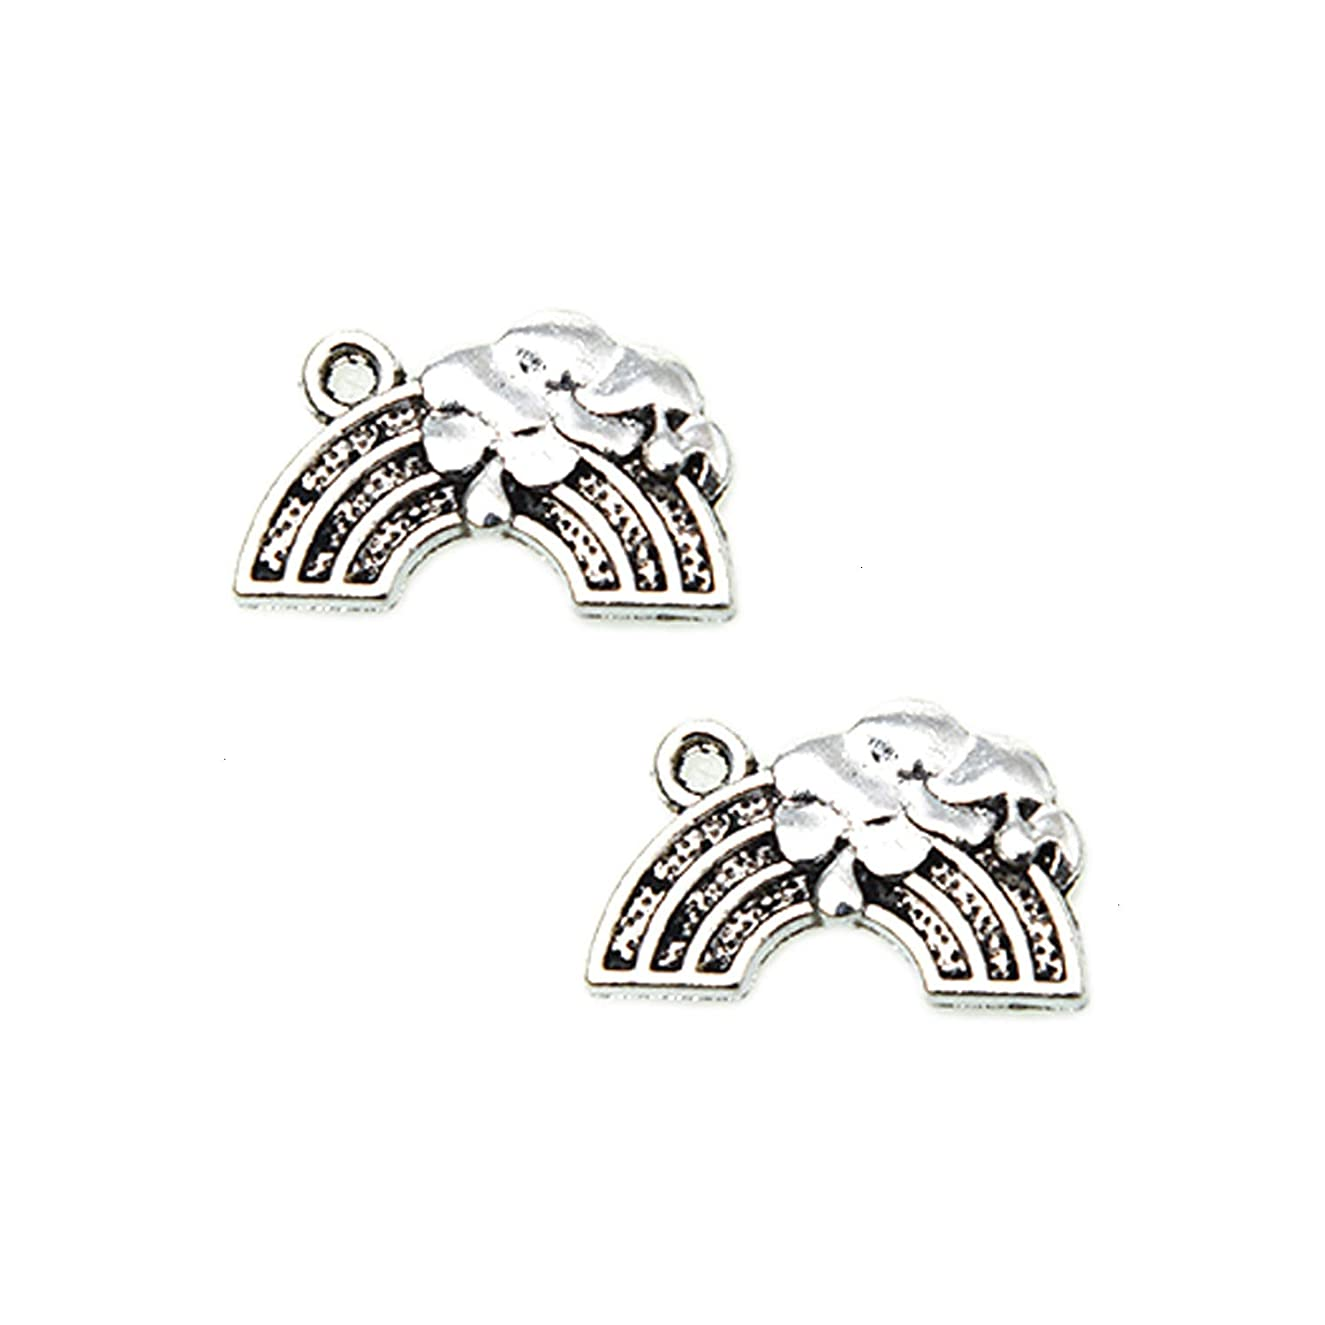 Monrocco 60 Pieces Antique Silver Rainbow Charms for Crafting Necklace, Bracelet, Jewelry Making 19x12mm